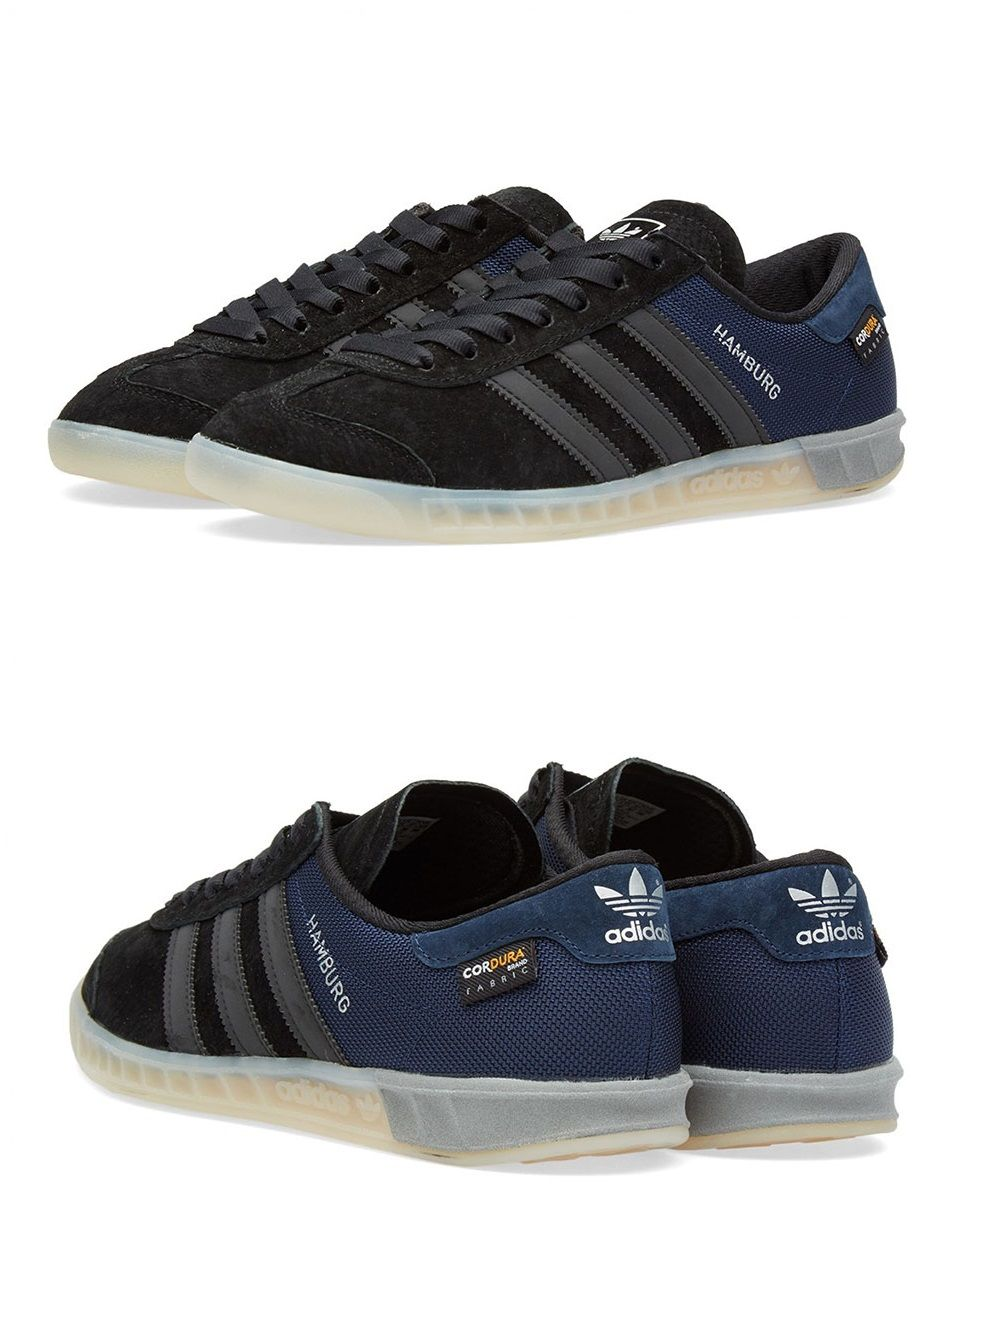 adidas Originals Hamburg Tech: Black/Blue